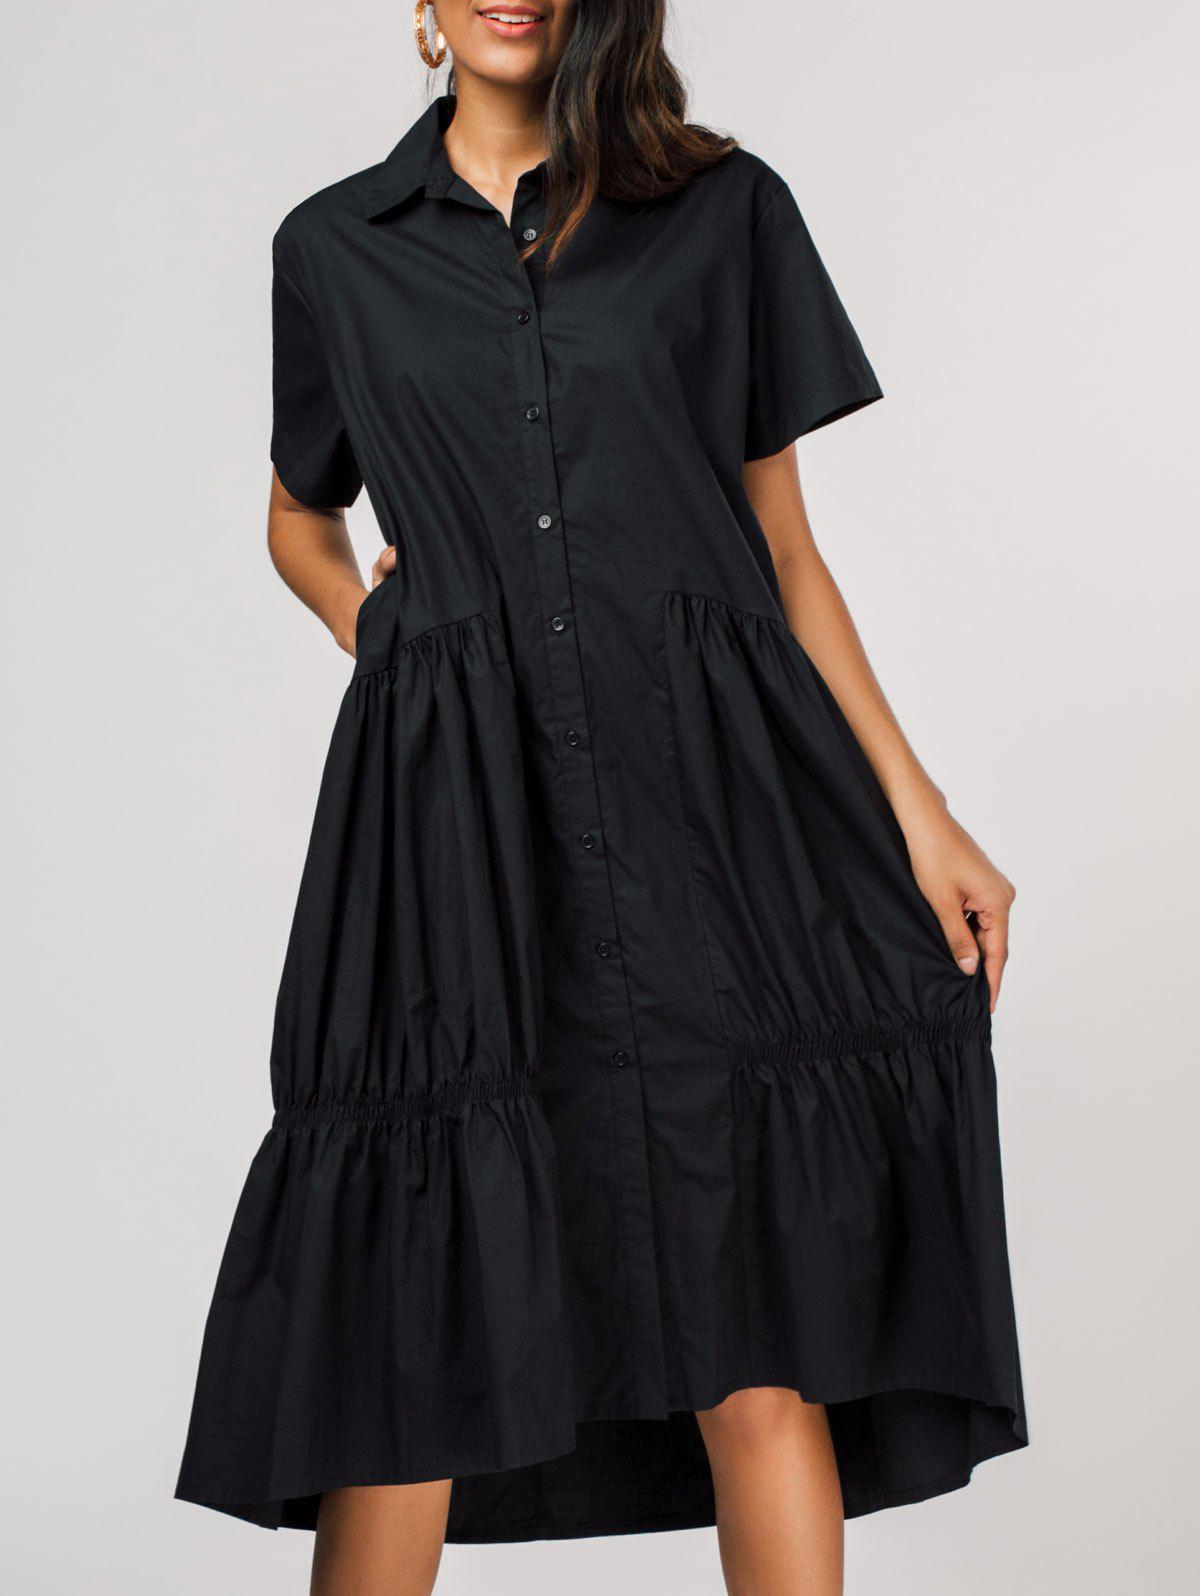 d5c95071802 83% OFF ] 2019 Pleated Short Sleeve Single-breasted Shirt Dress ...